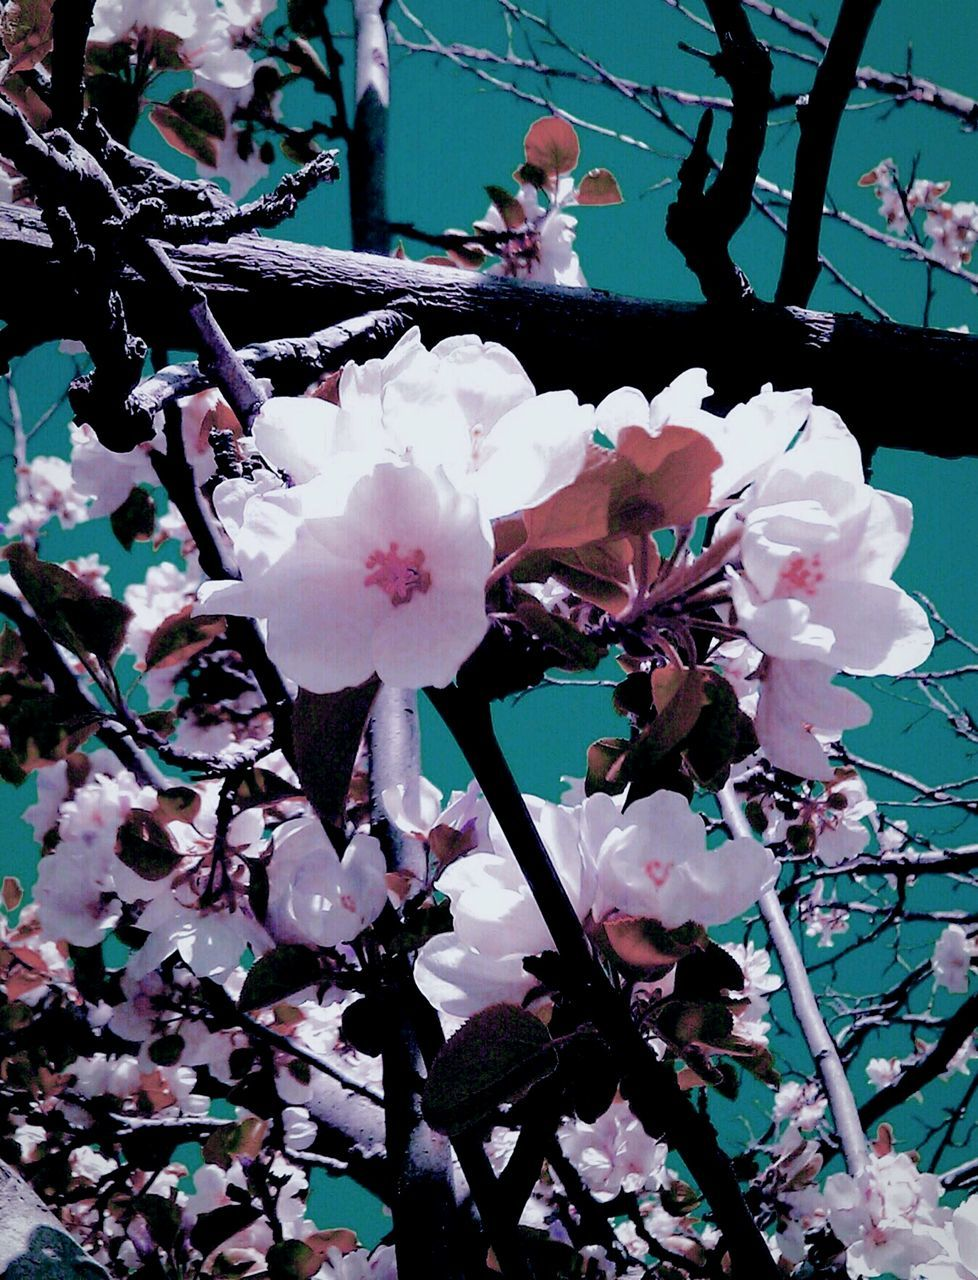 flower, fragility, growth, beauty in nature, petal, blossom, nature, tree, freshness, springtime, branch, flower head, white color, no people, apple blossom, blooming, twig, day, plum blossom, pink color, outdoors, close-up, plant, sky